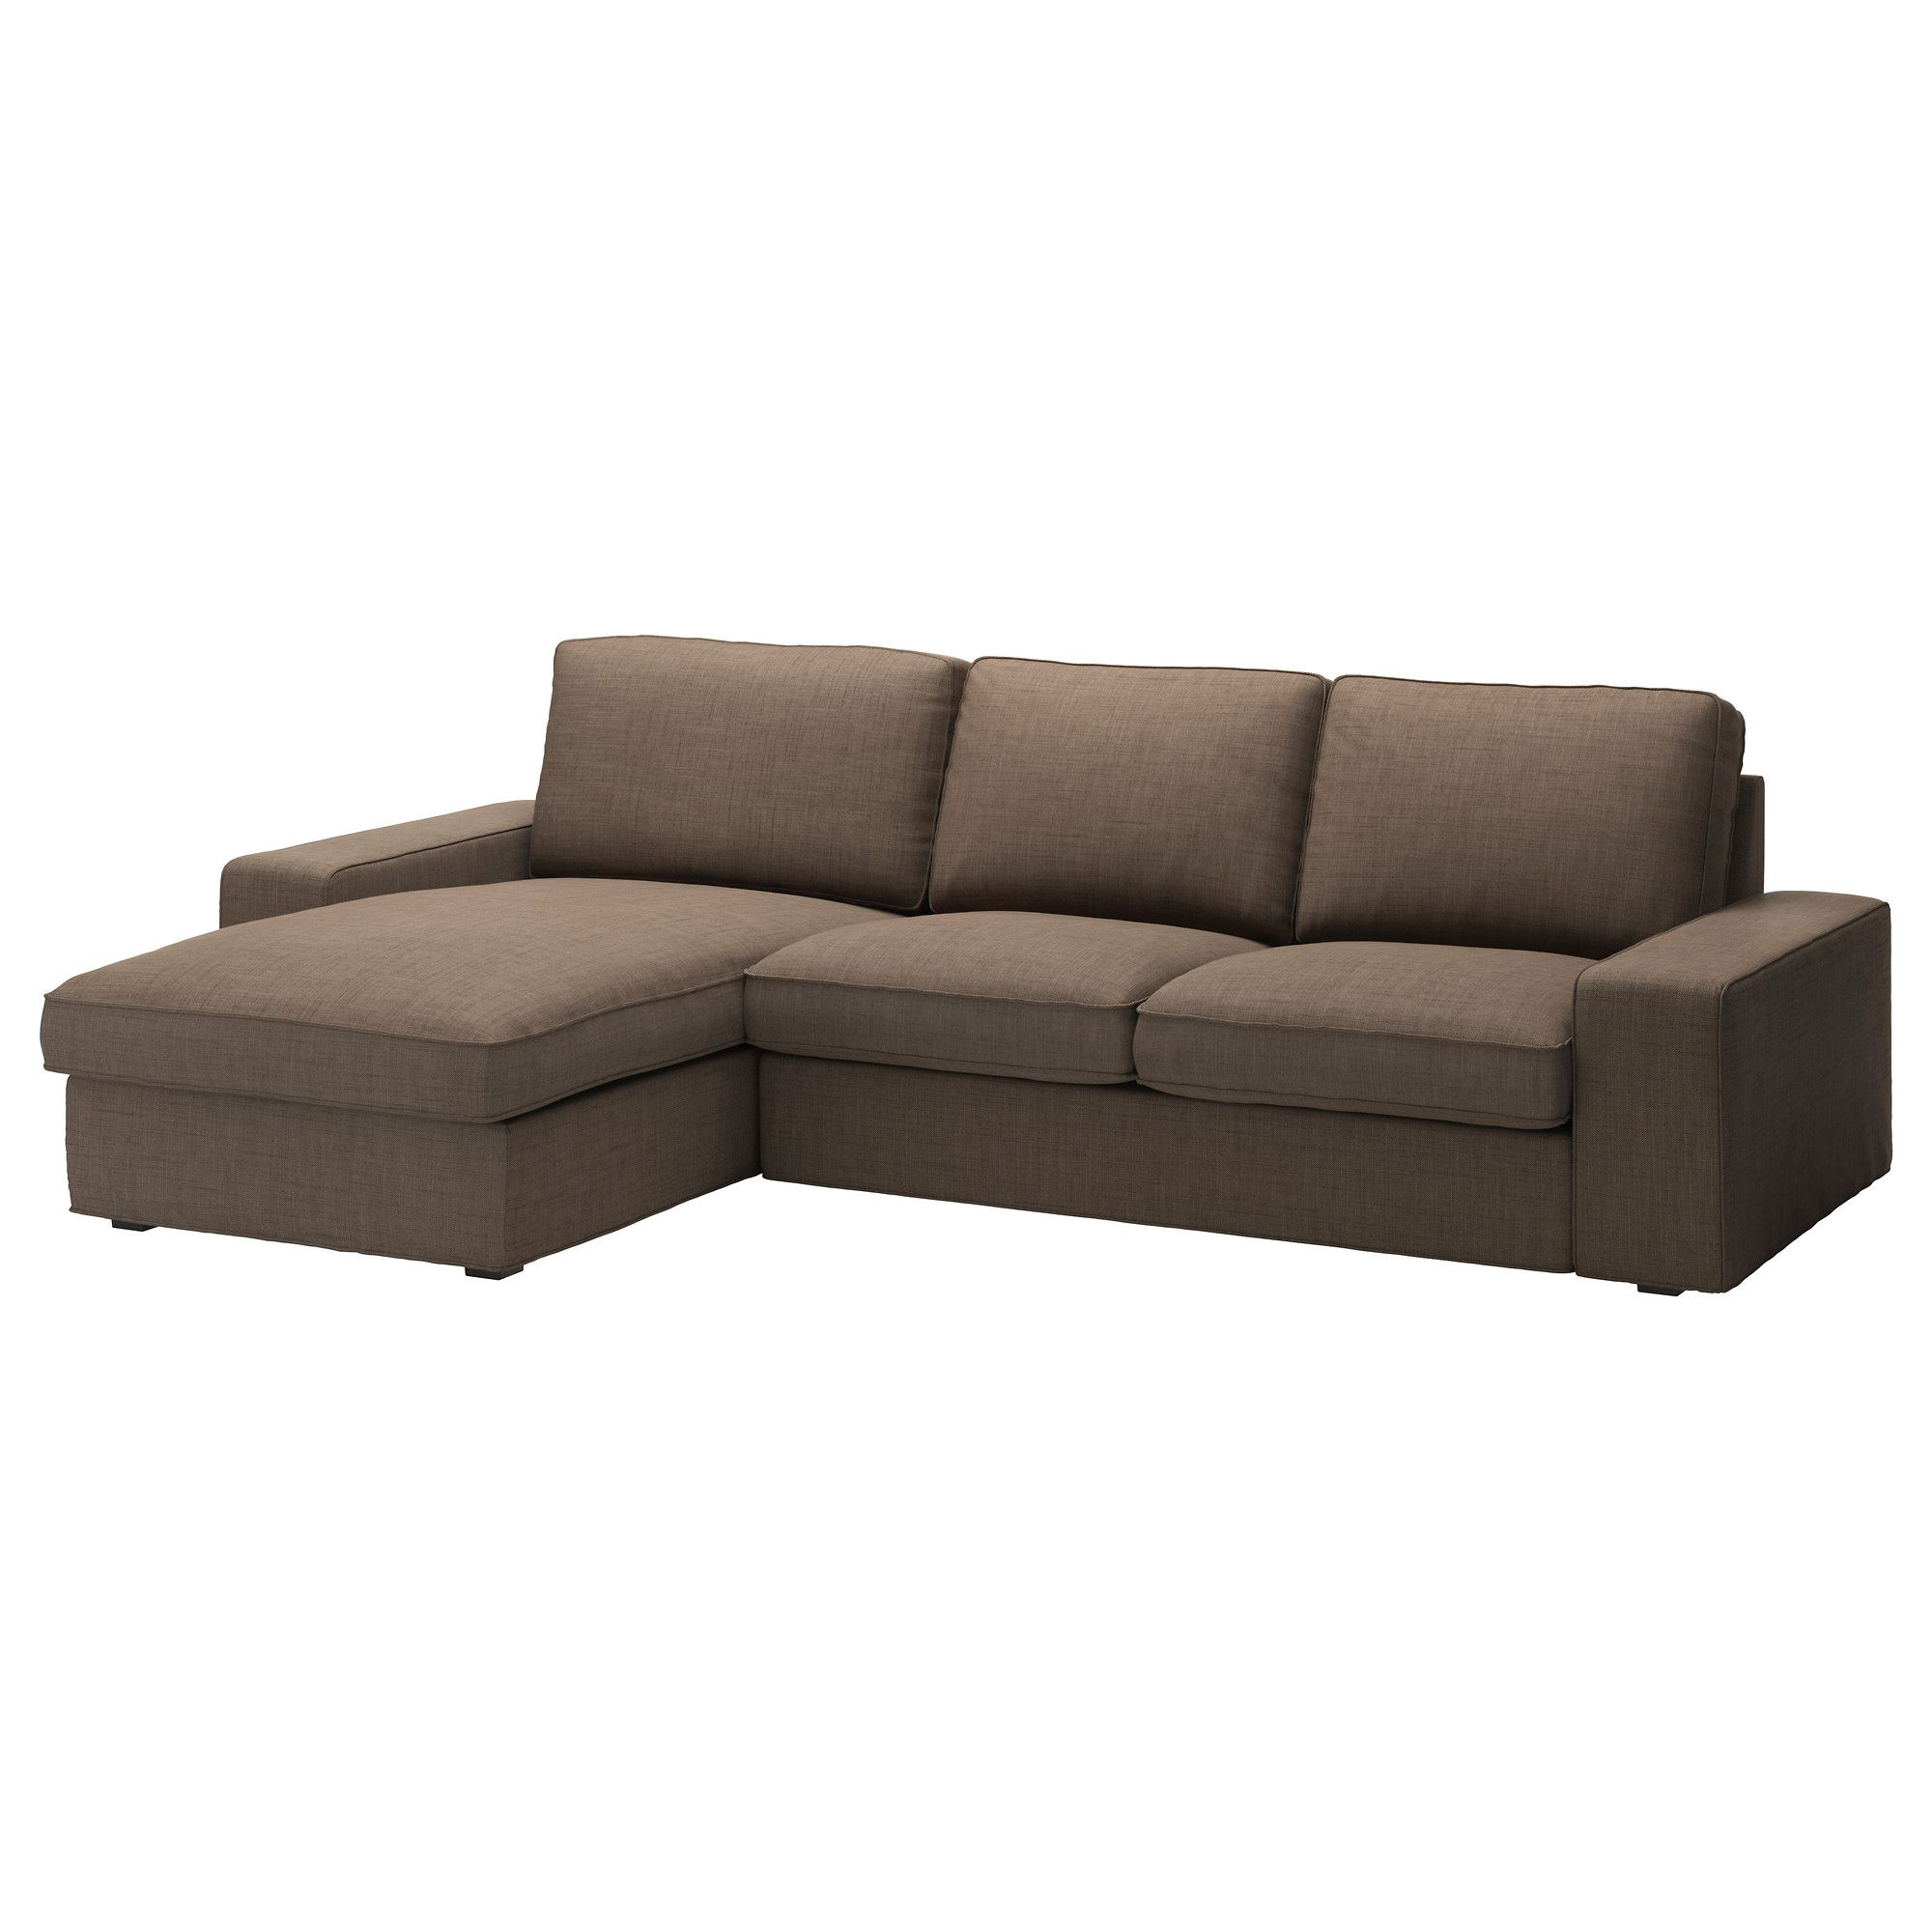 Sofa Darwin Interio Kivik Loveseat And Chaise Lounge Isunda Brown Ikea Sofa D